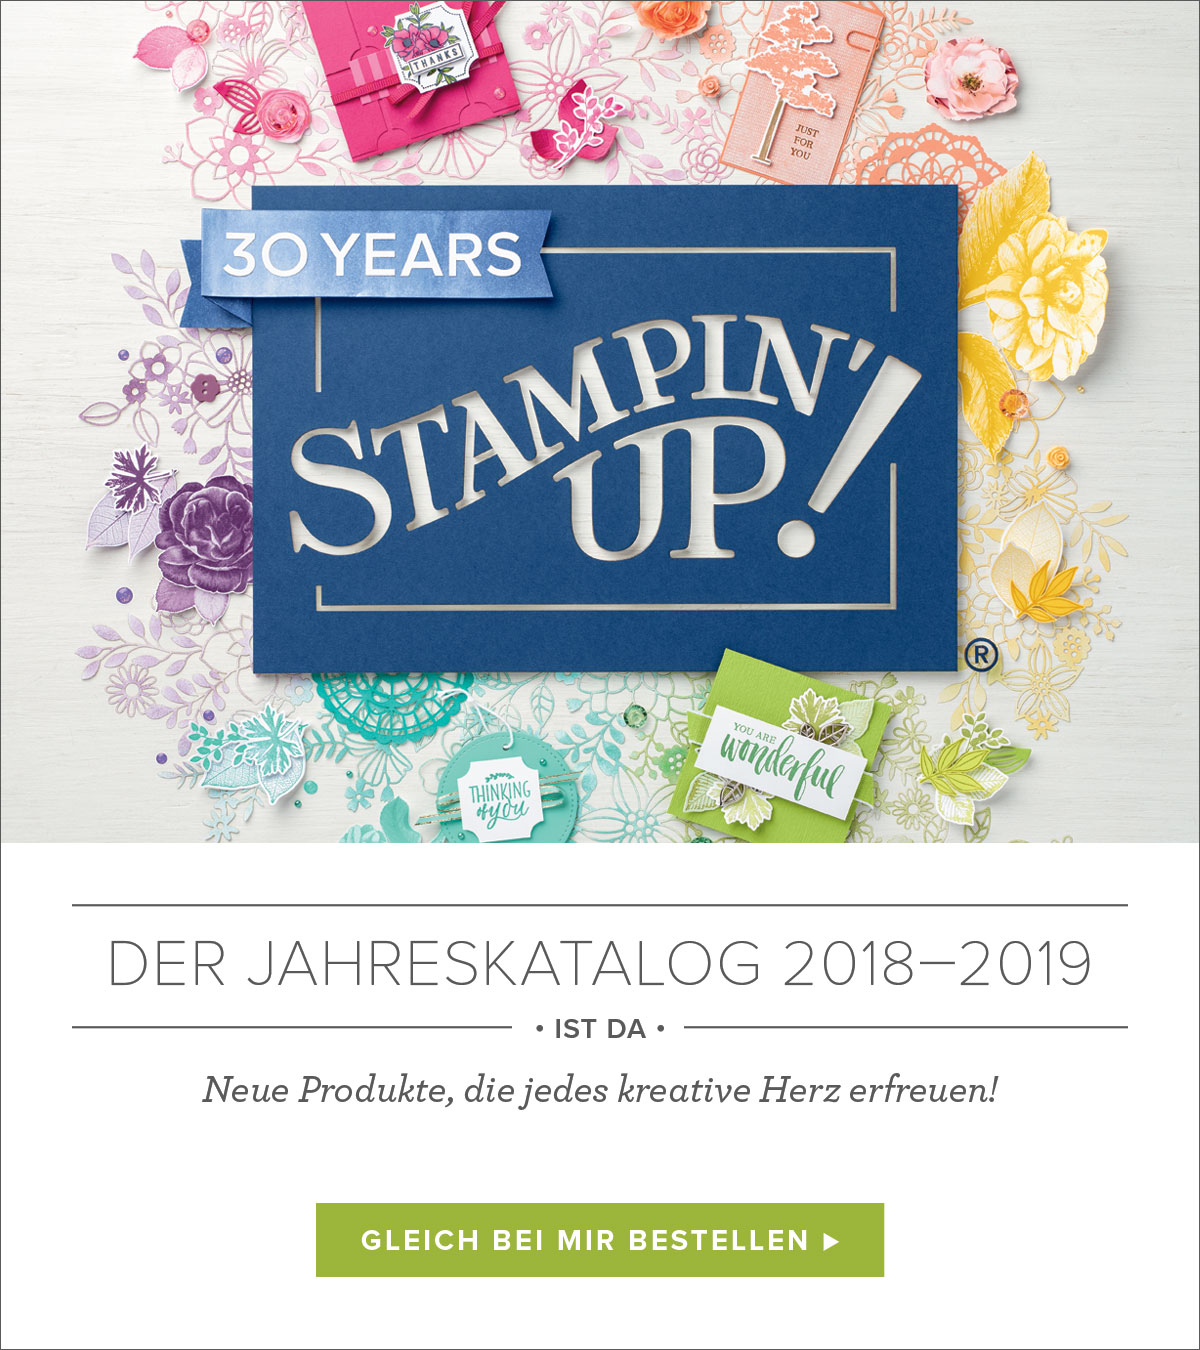 https://su-media.s3.amazonaws.com/media/catalogs/2018-2019%20Annual%20Catalog/Shareables/05.02.18_SHAREABLE_AC2018_CatalogCover_DE.jpg